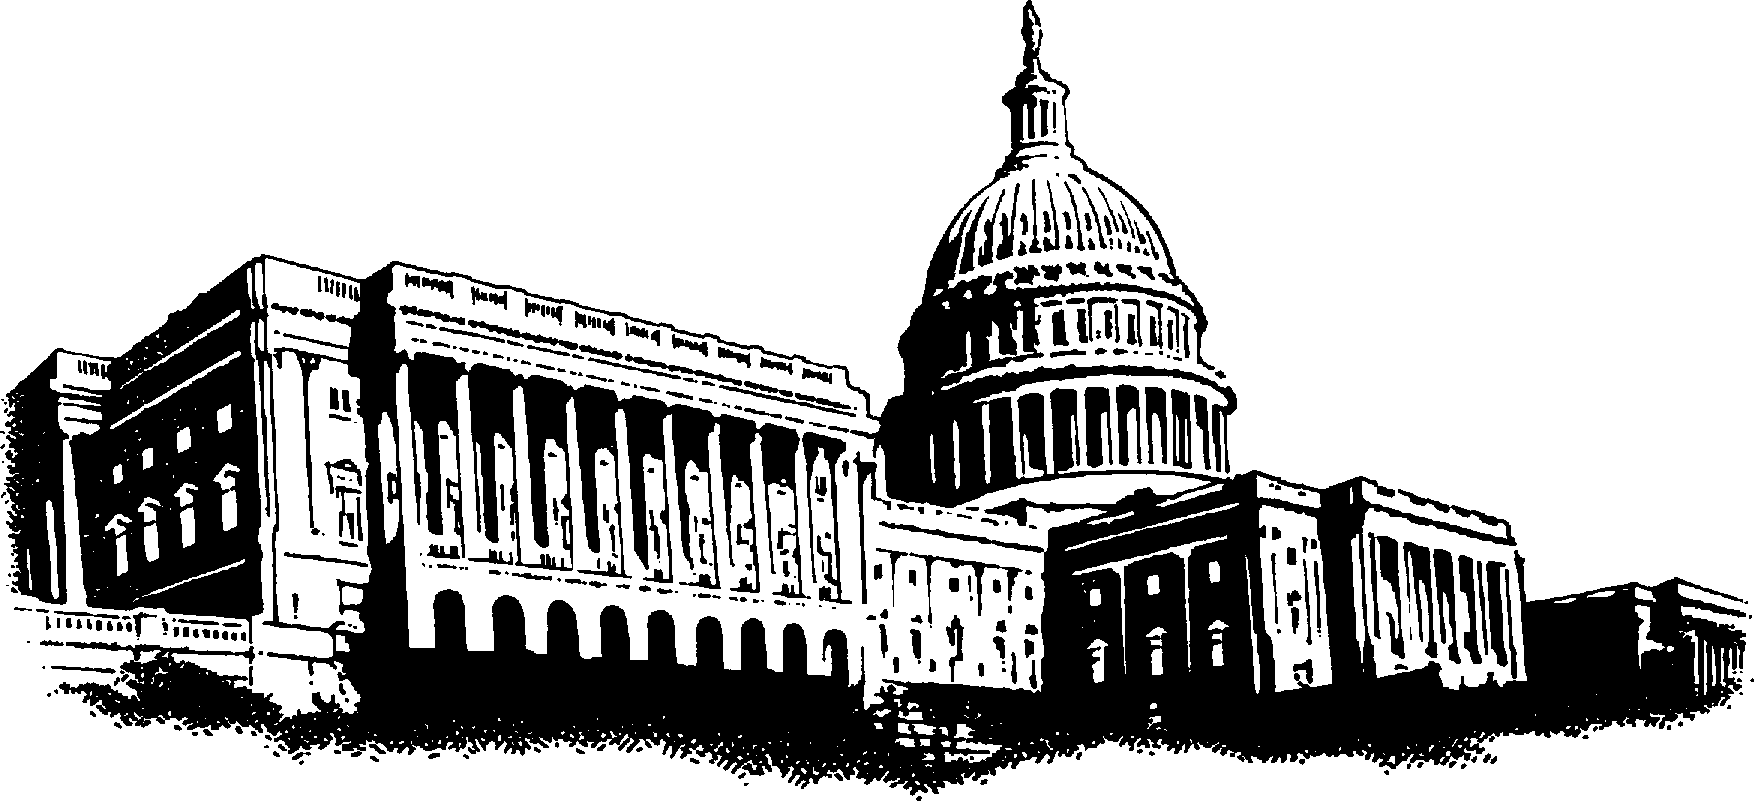 Free D.C Cliparts, Download Free Clip Art, Free Clip Art on.